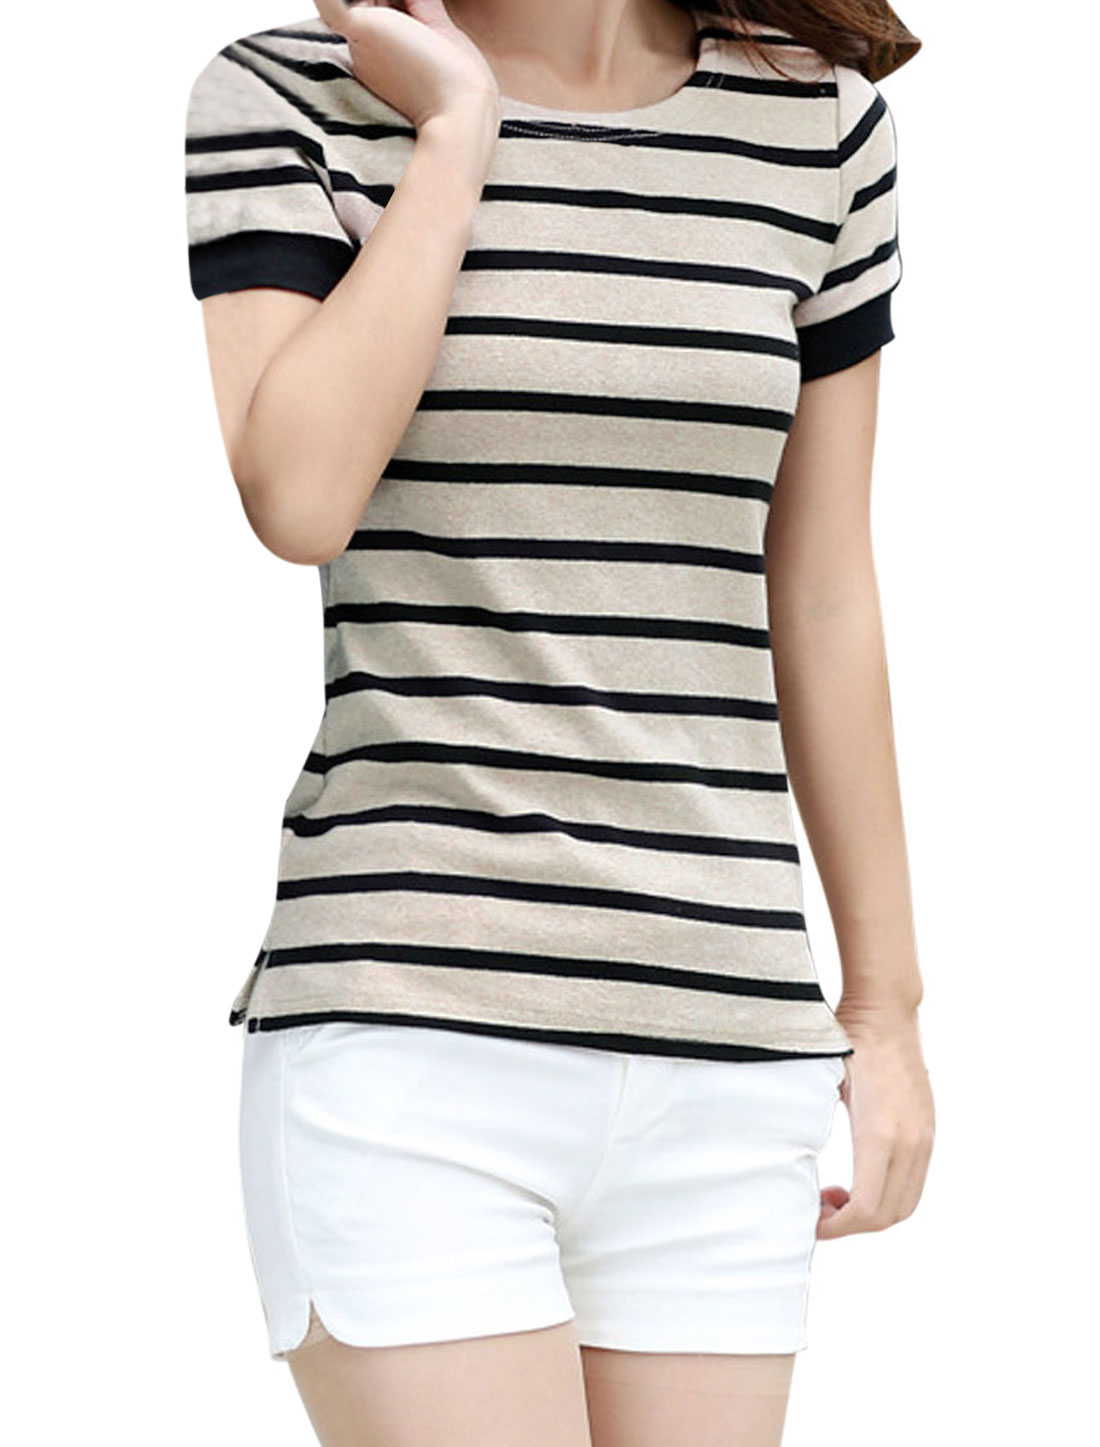 Lady's Summer Fit Bar Striped Short Sleeve Casual T-shirt Dark Beige M